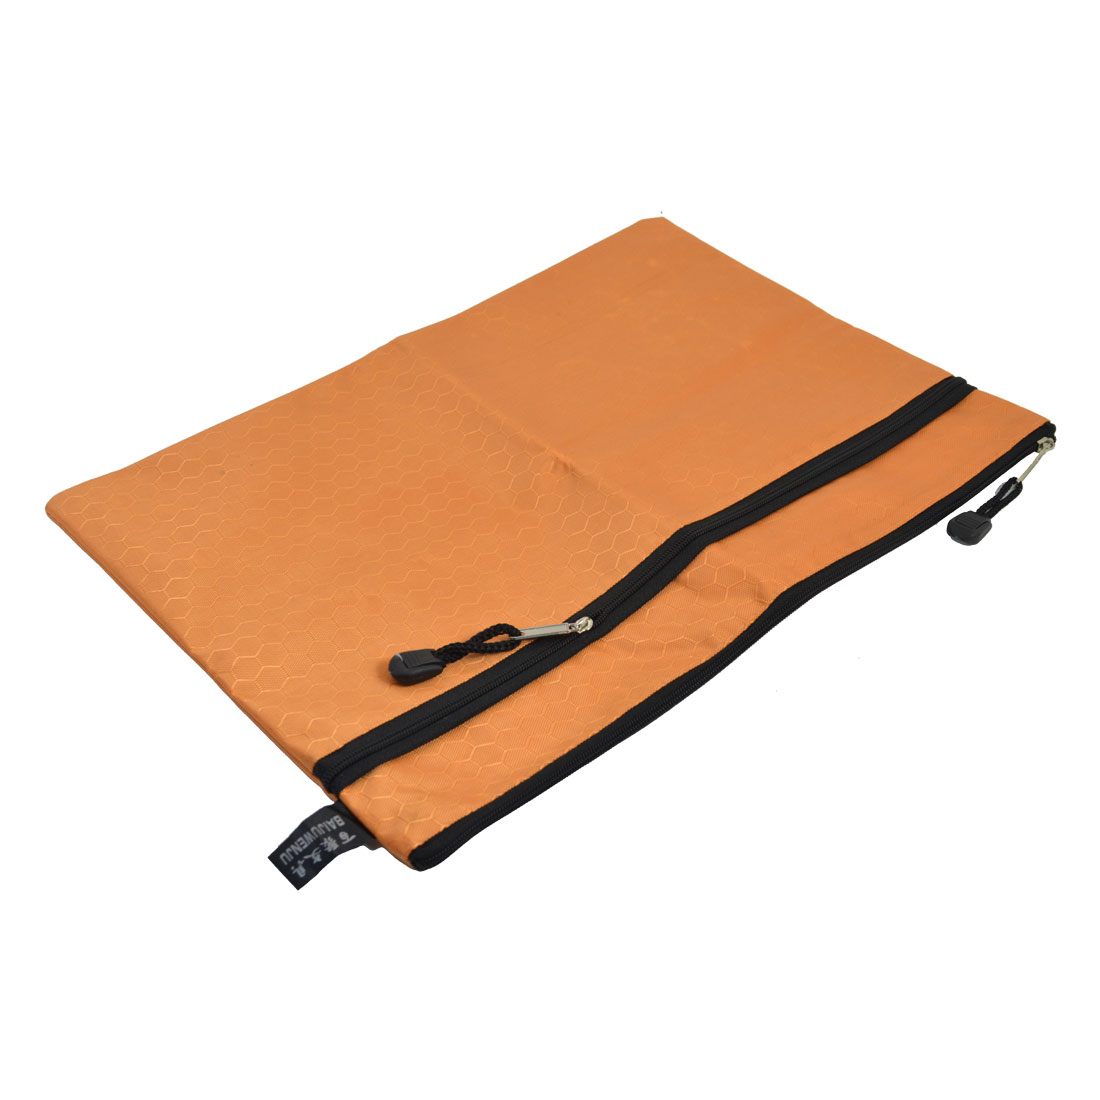 Zipper Closure Hexagon Pattern 2 Slots A4 Paper Files Holder Zipper Bag Orange